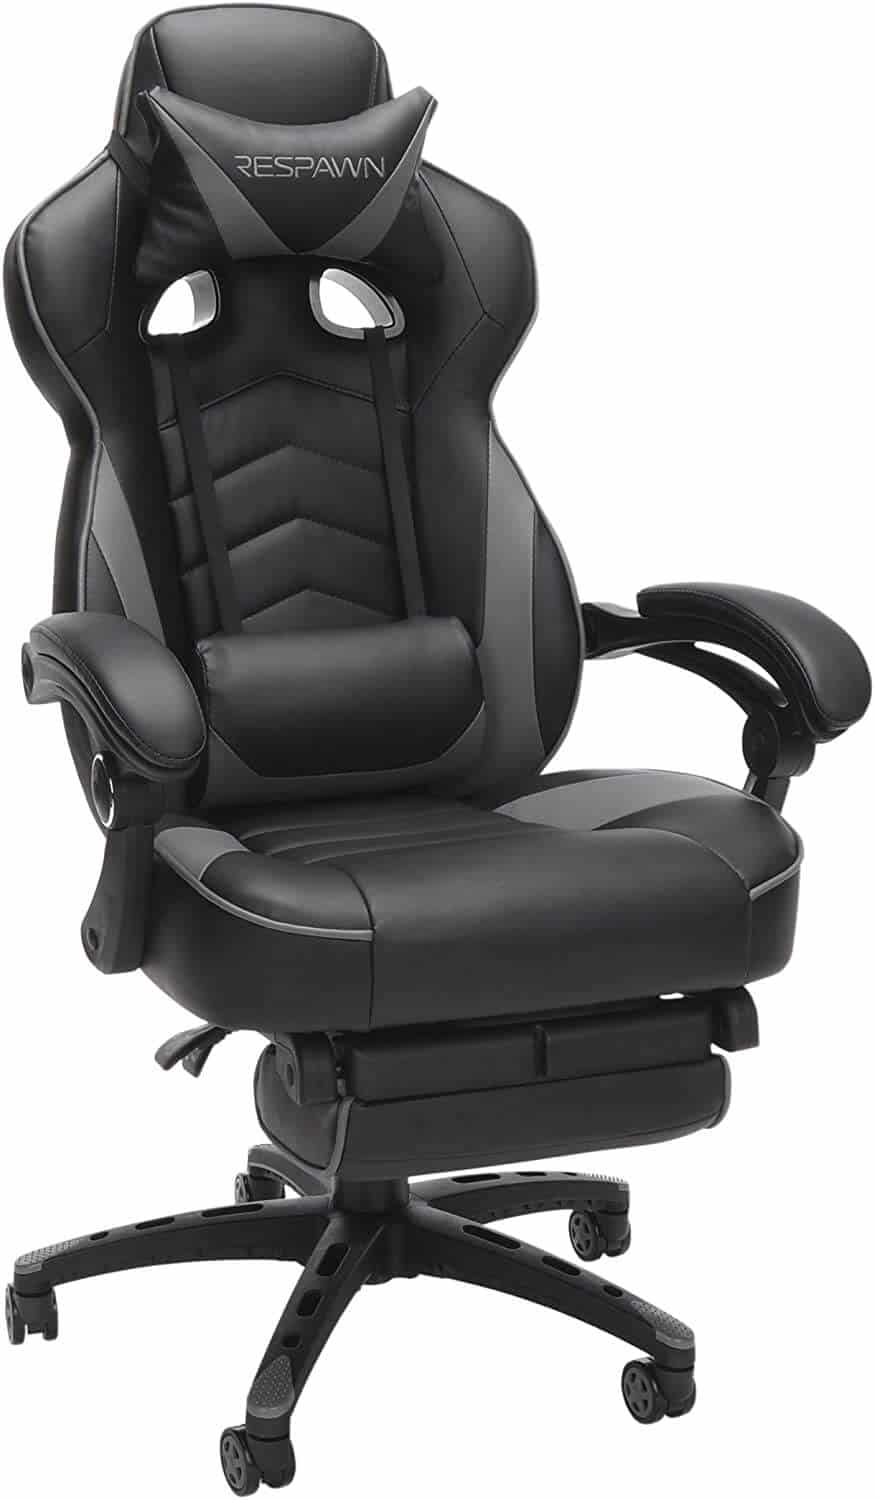 Respawn 110 – Best Racing Gaming Chair Under 200